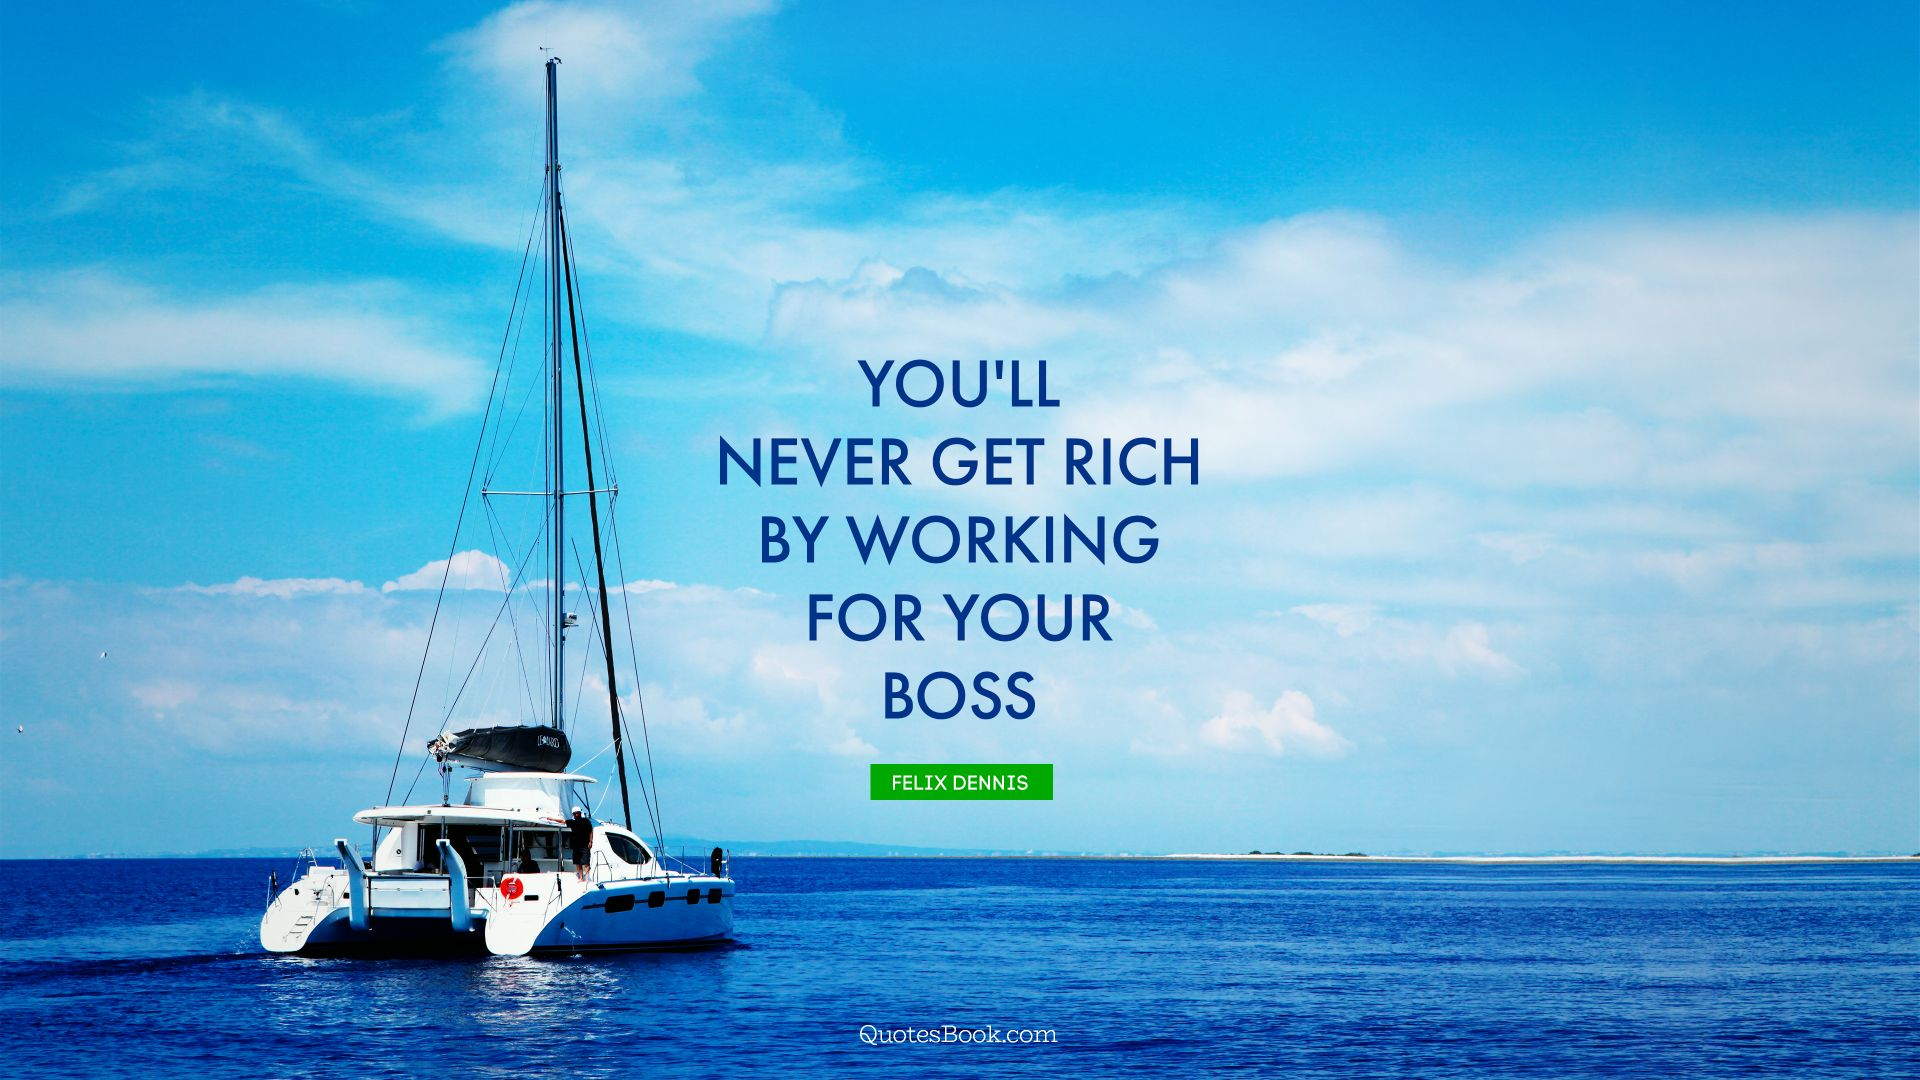 You'll never get rich by working for your boss. - Quote by Felix Dennis